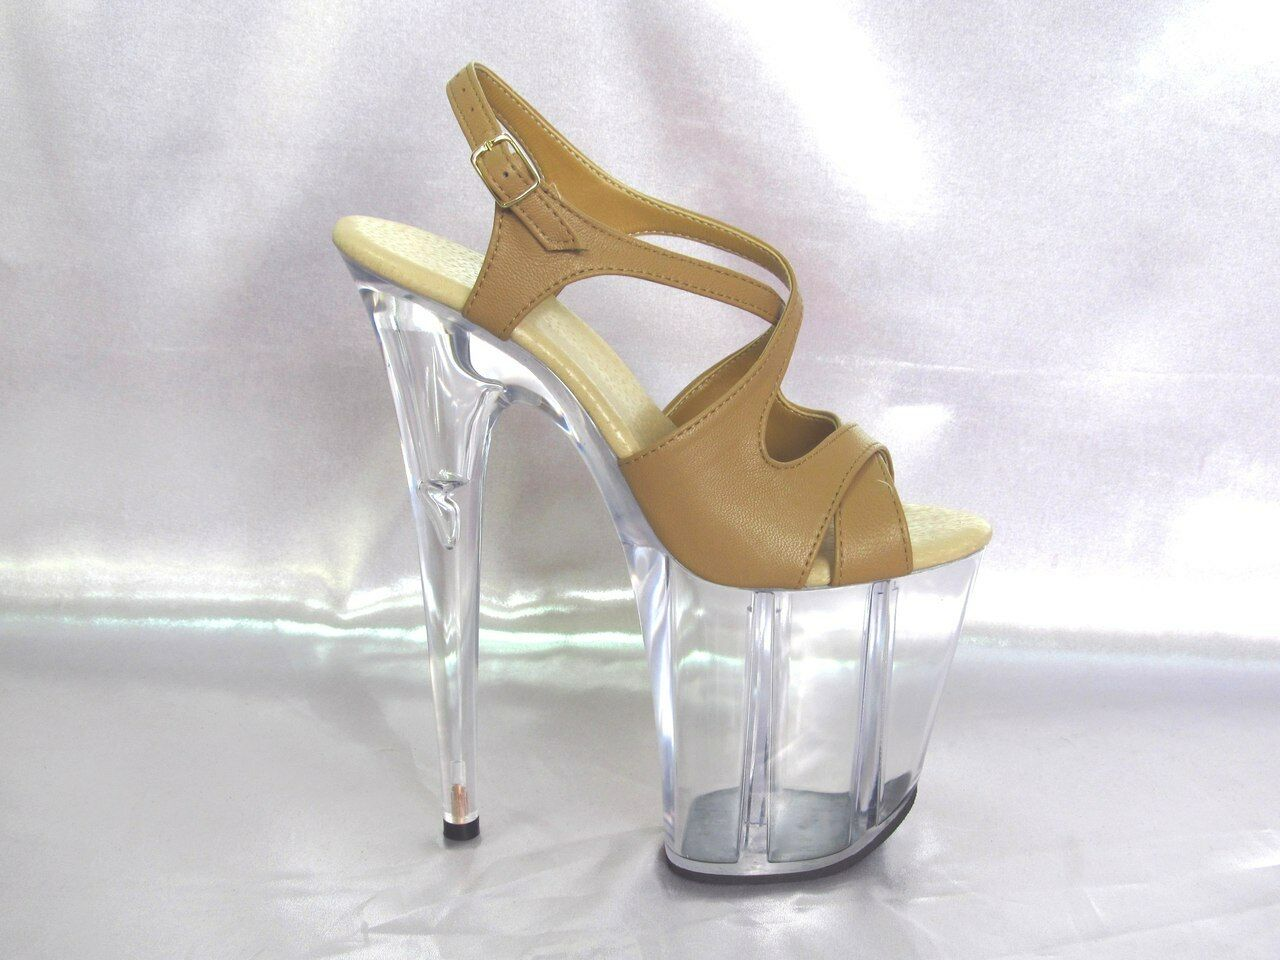 Exotic handmade sexy schuhe 8 high heel heel heel clear platform burlesque strip pole dance fef9be